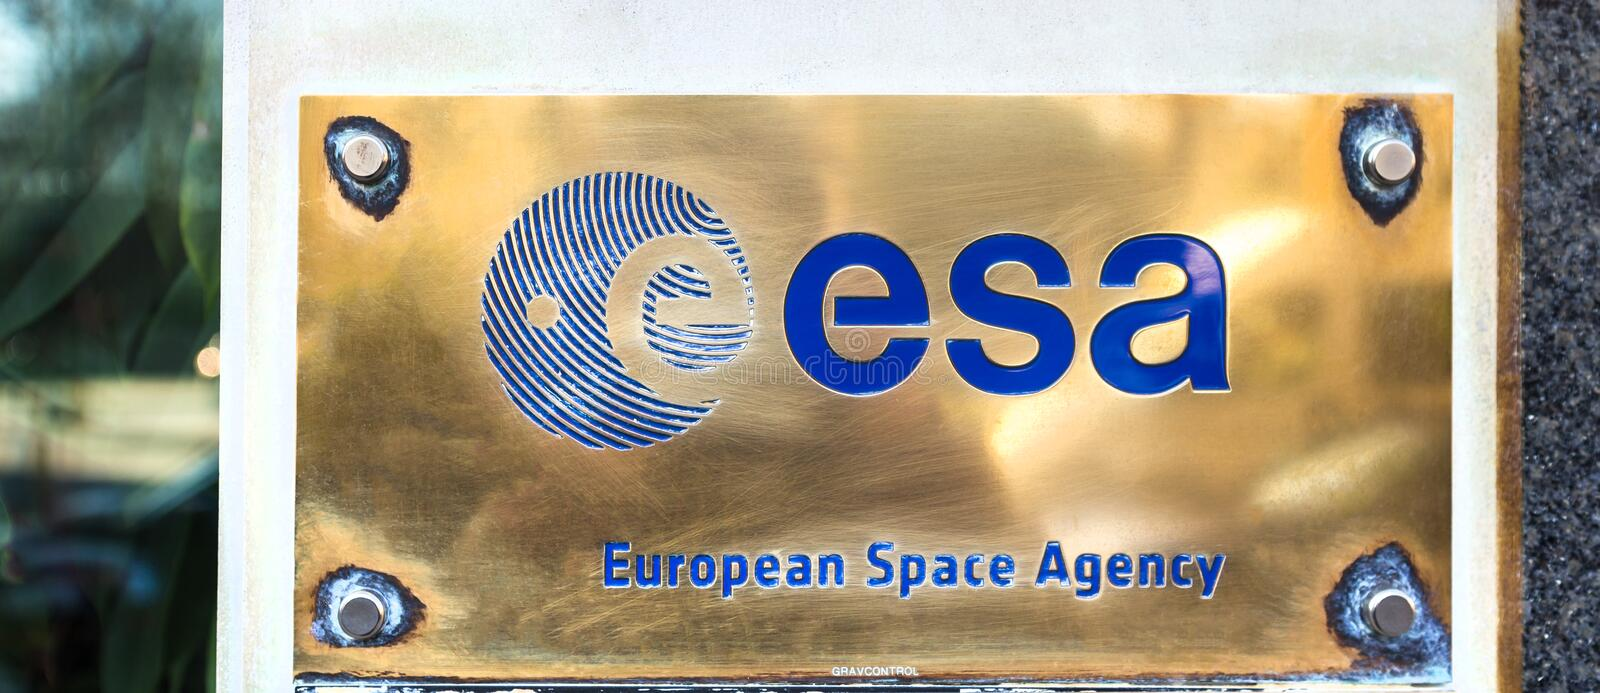 Esa european space agency sign in brussels belgium royalty free stock photography